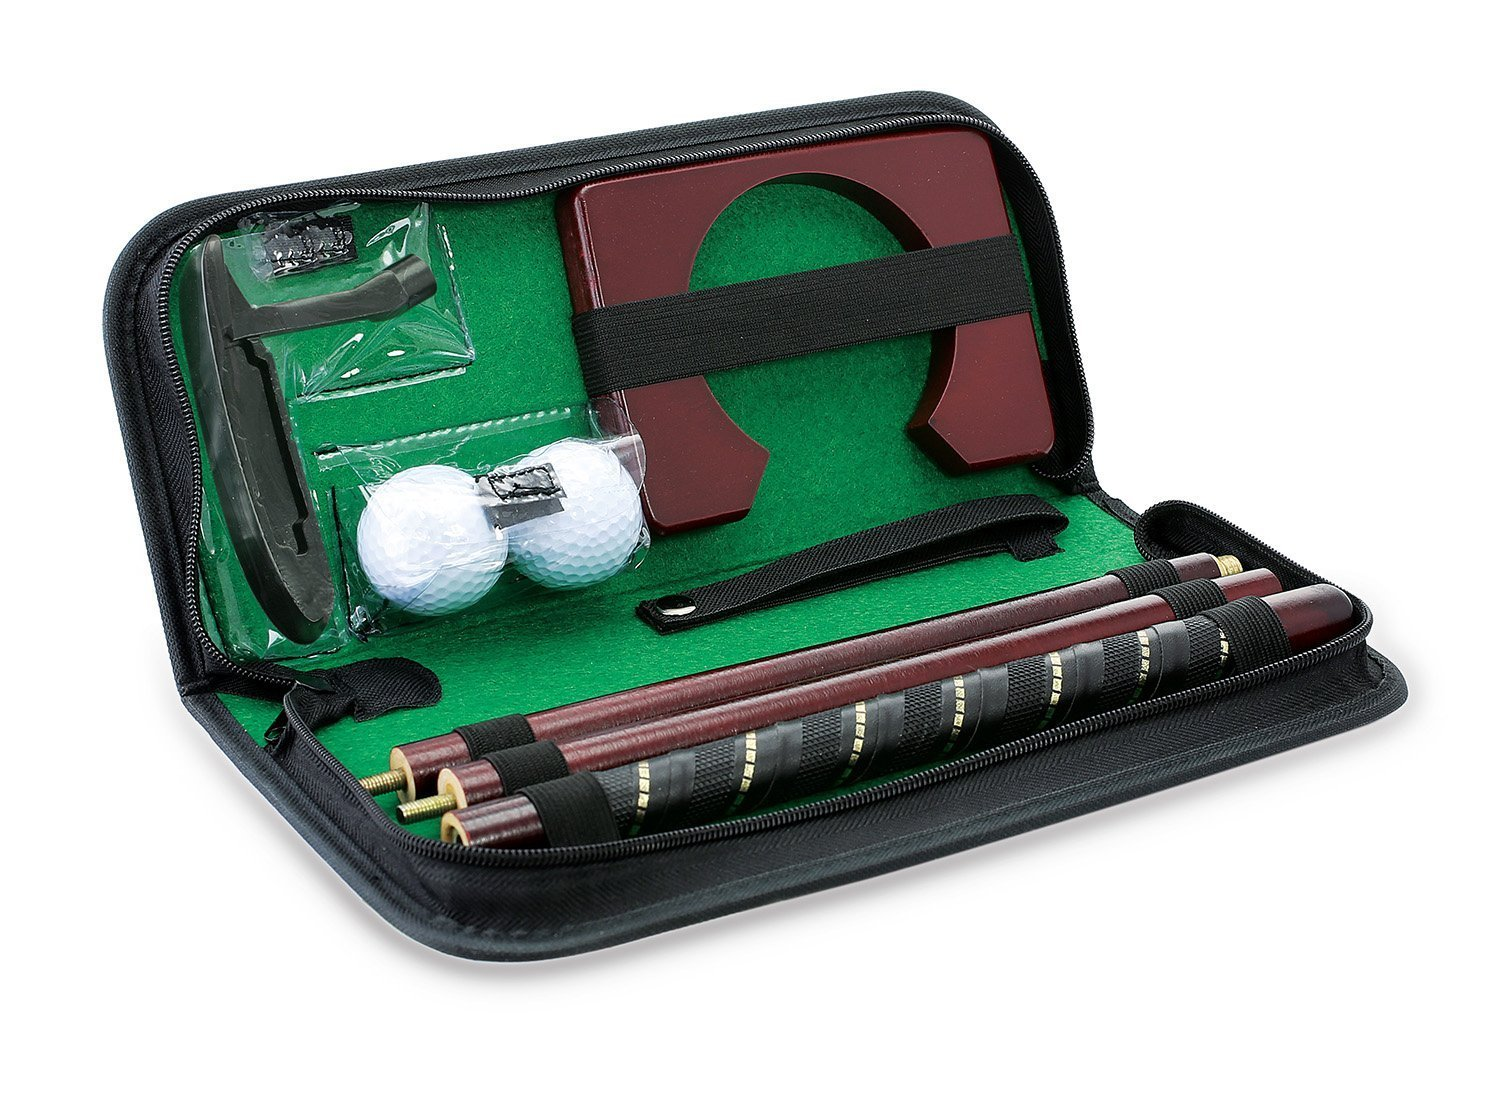 POSMA PG020AD Golf Putter kit set with auto reverse electric putting hole in a golfers carry bag, putter club, 2pcs golf balls - perfect for Indoor outdoor golf putting training practice aid by POSMA (Image #2)